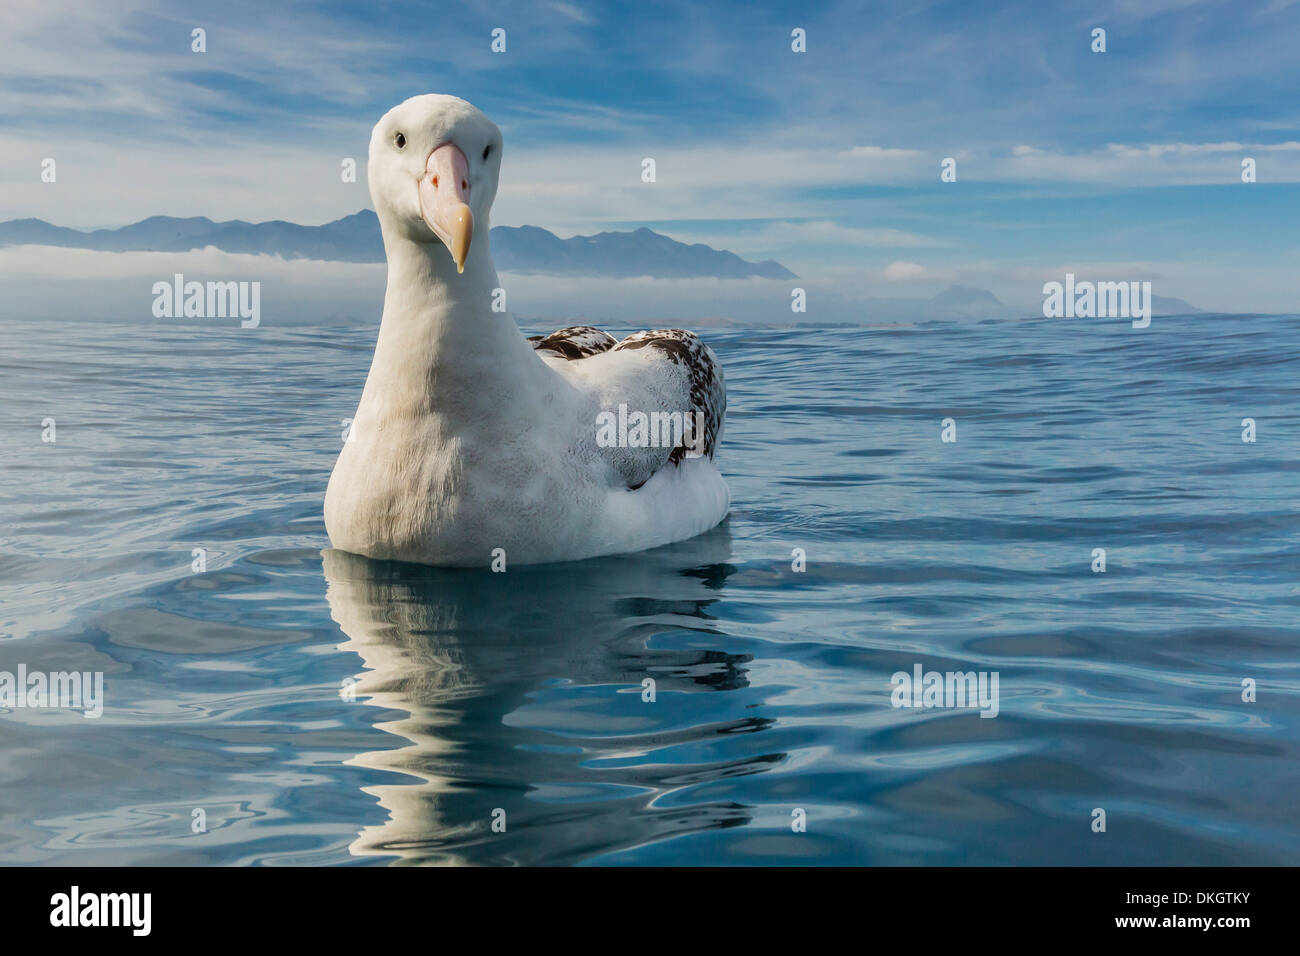 Wandering albatross (Diomedea exulans) in calm seas off Kaikoura, South Island, New Zealand, Pacific - Stock Image